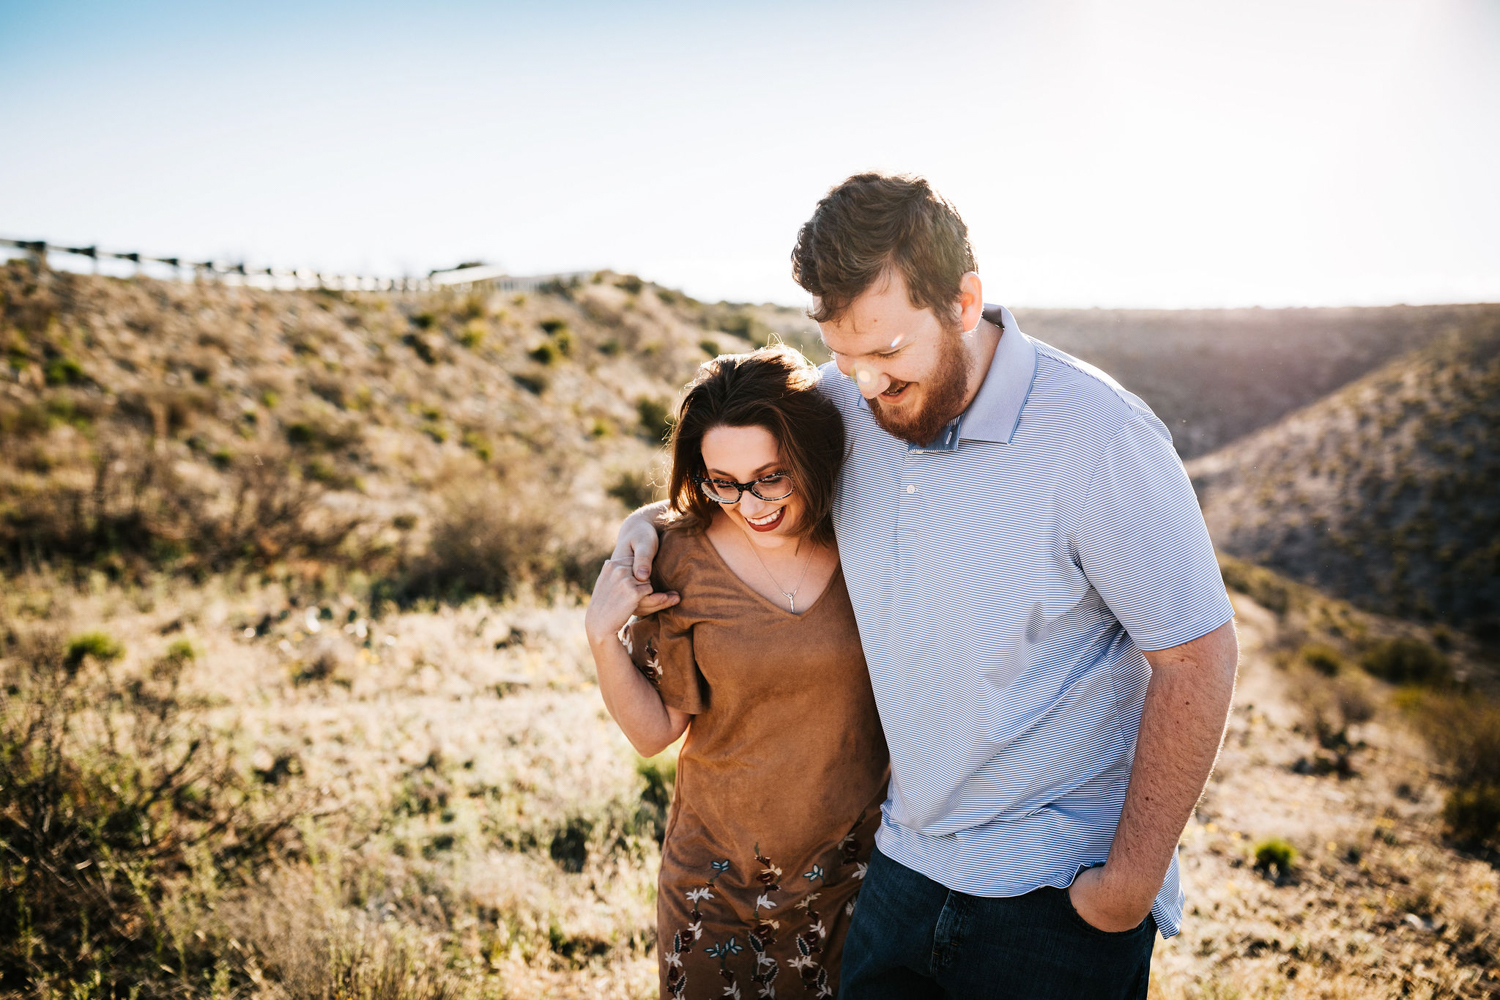 3. adventurous-carlsbad-andrea-van-orsouw-photography-fun-wedding-natural-new-mexico-photographer-2.jpg